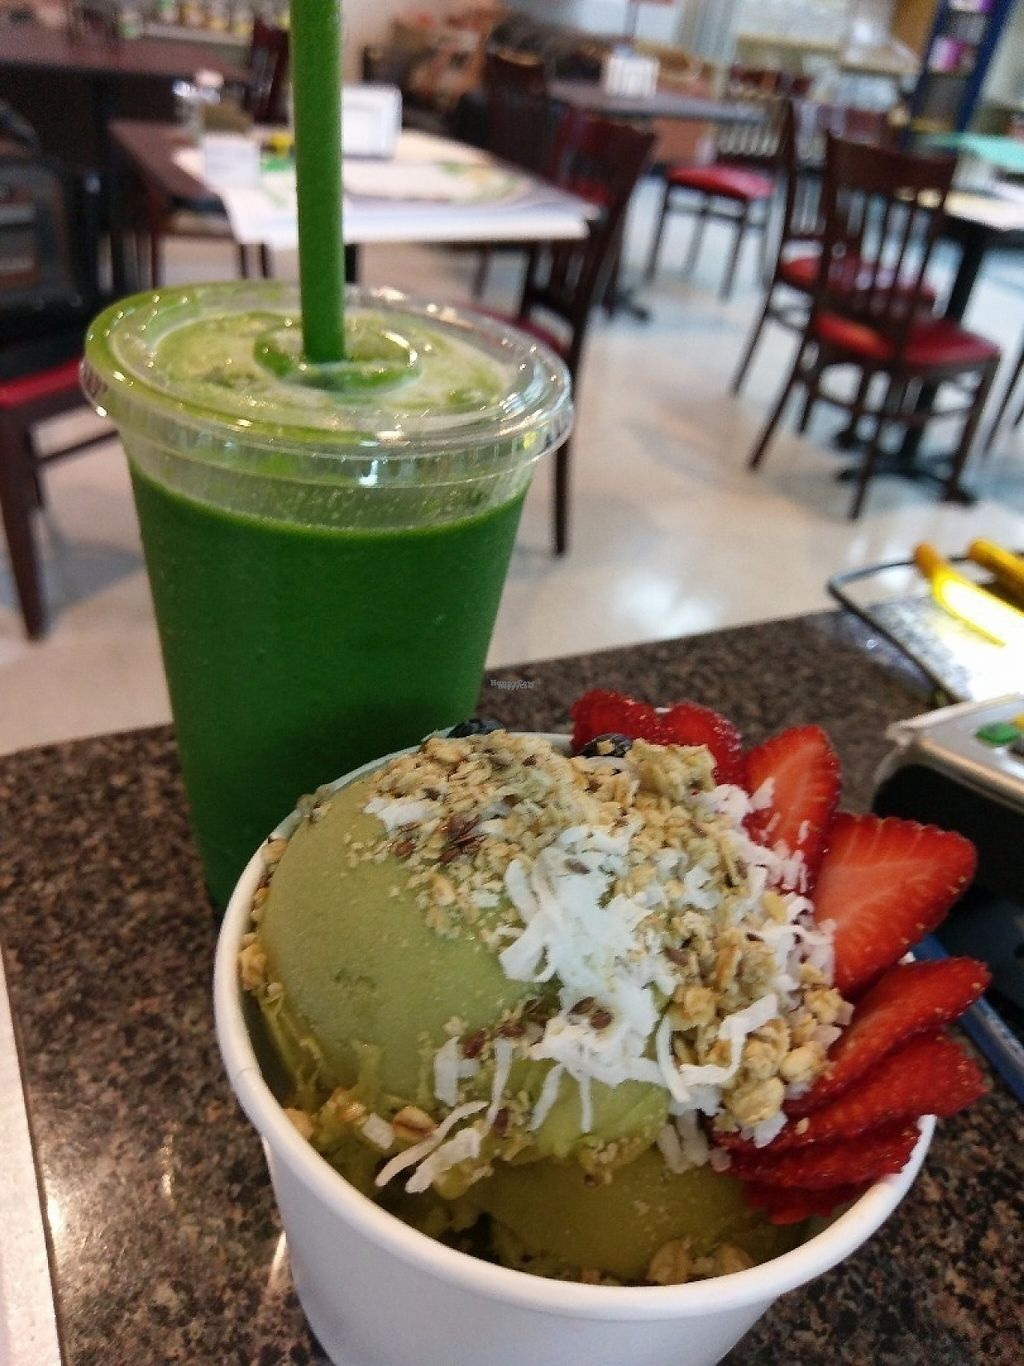 """Photo of Nutrition Shoppe Juice and Sandwich Bar  by <a href=""""/members/profile/Ricks"""">Ricks</a> <br/>Popeye and green match bowl <br/> April 9, 2017  - <a href='/contact/abuse/image/37007/246266'>Report</a>"""